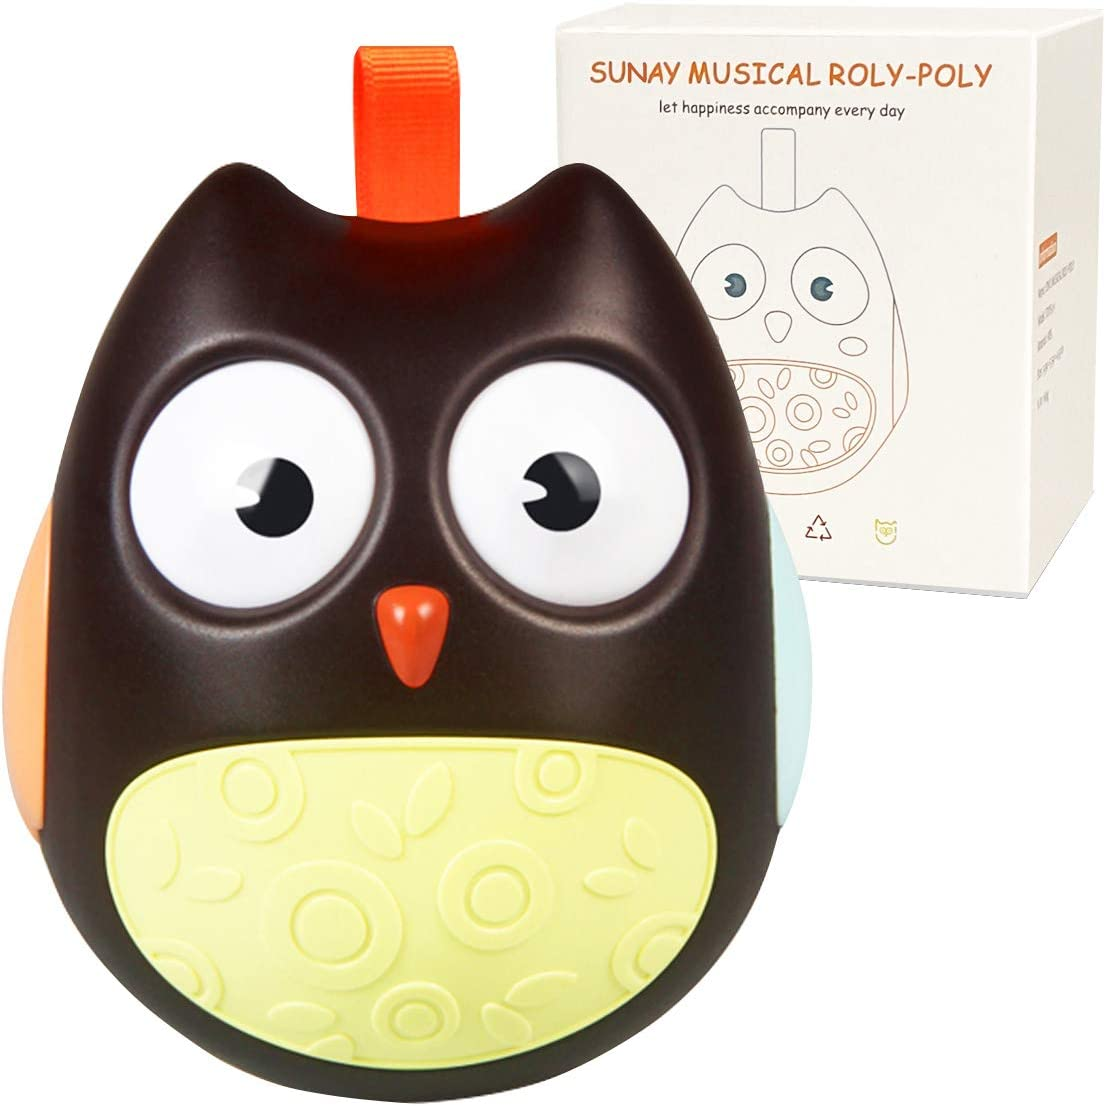 Sunay Roly Poly Baby Toys 3-6 Months and 6 to 12 Months Developmental, Tummy Time Toys - Baby Musical Toys Built-in Bell - Gift Packed Tumbler Wobbler for Baby Boy and Girl (Brown)